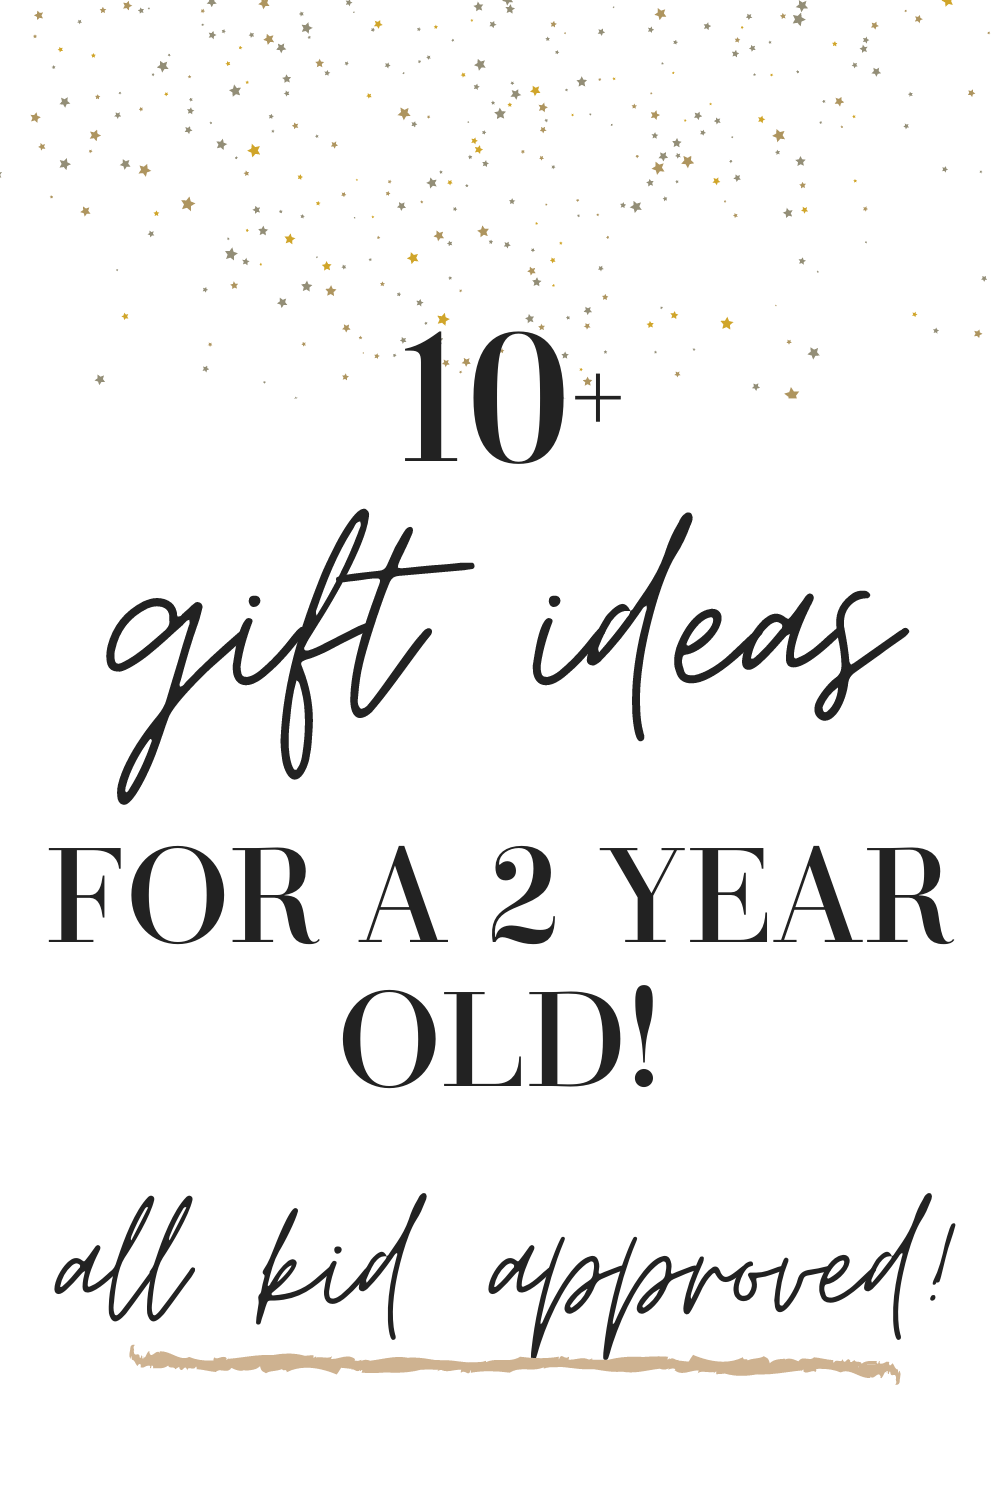 2 year old gift ideas